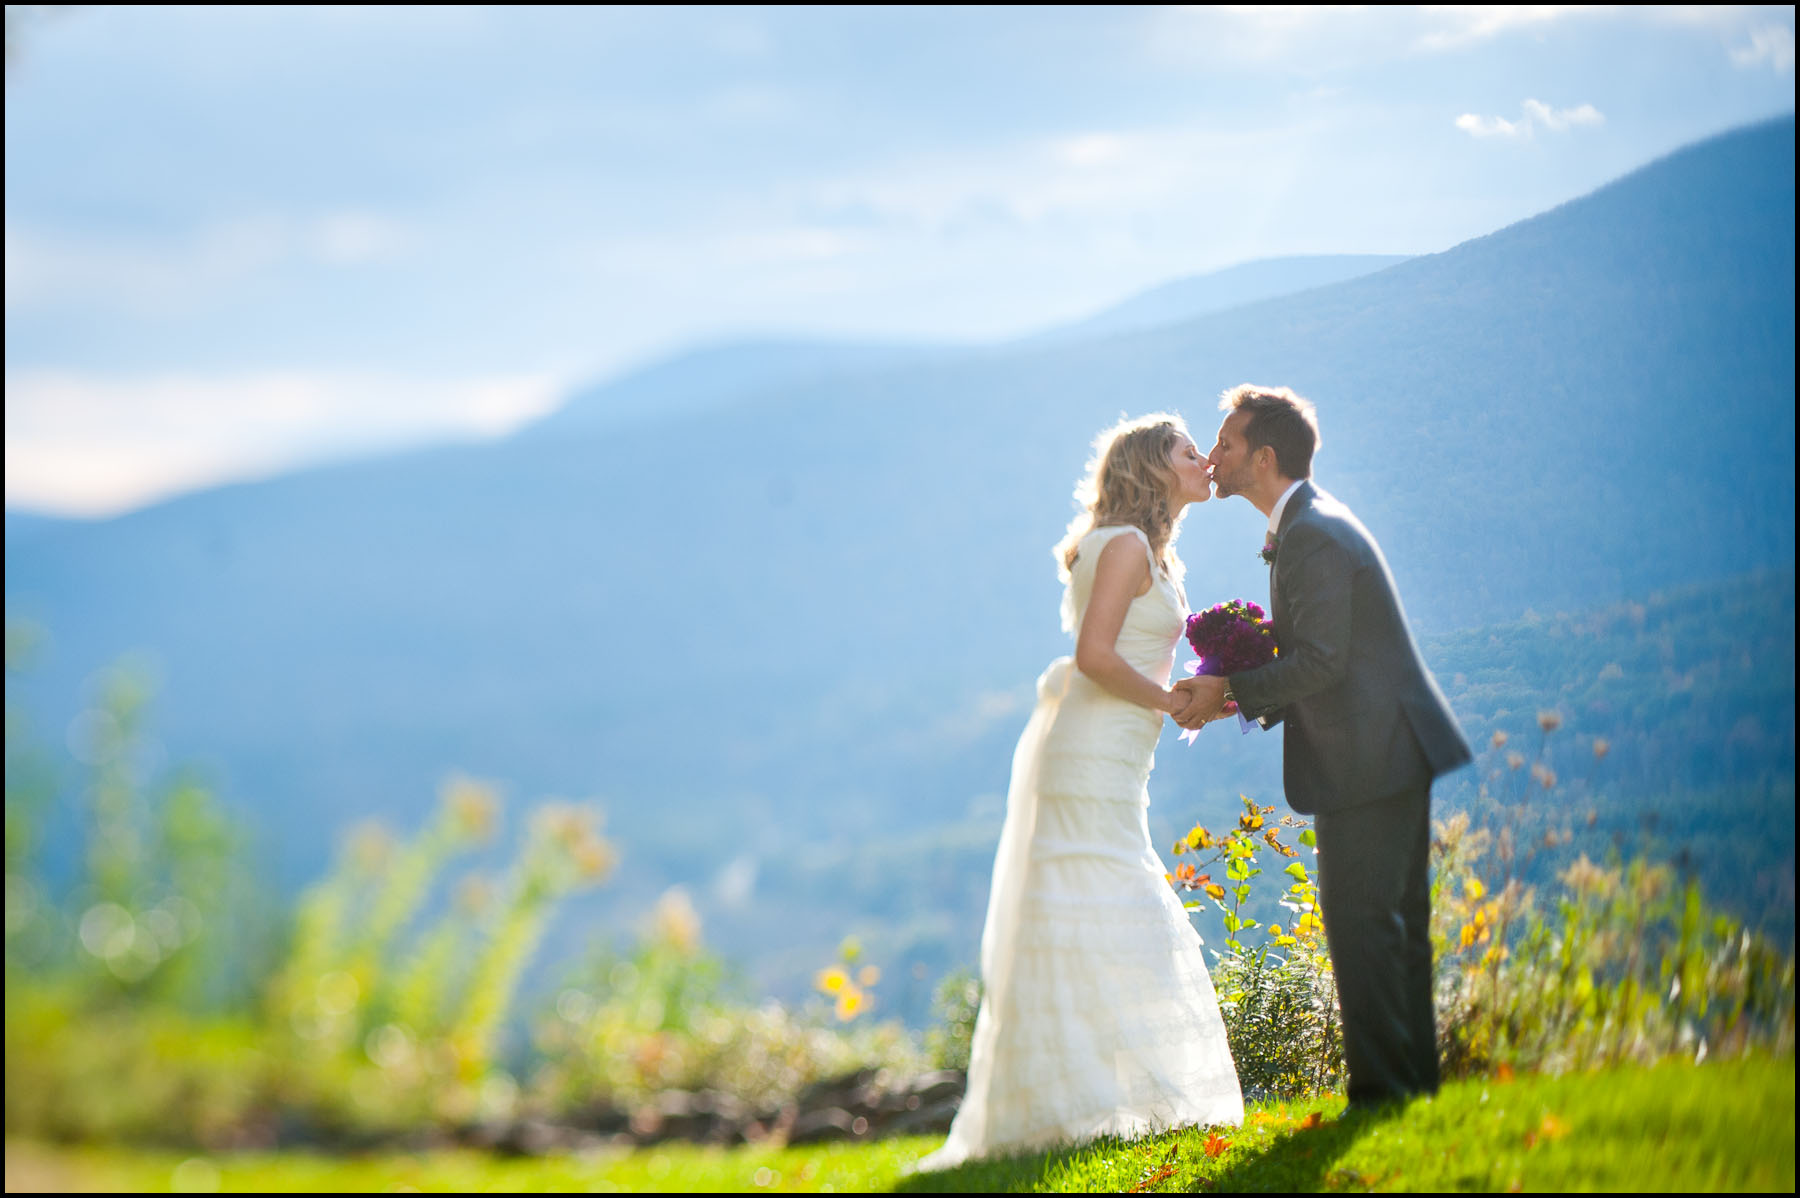 Julie and Rob at their Onteora Mountain house wedding.